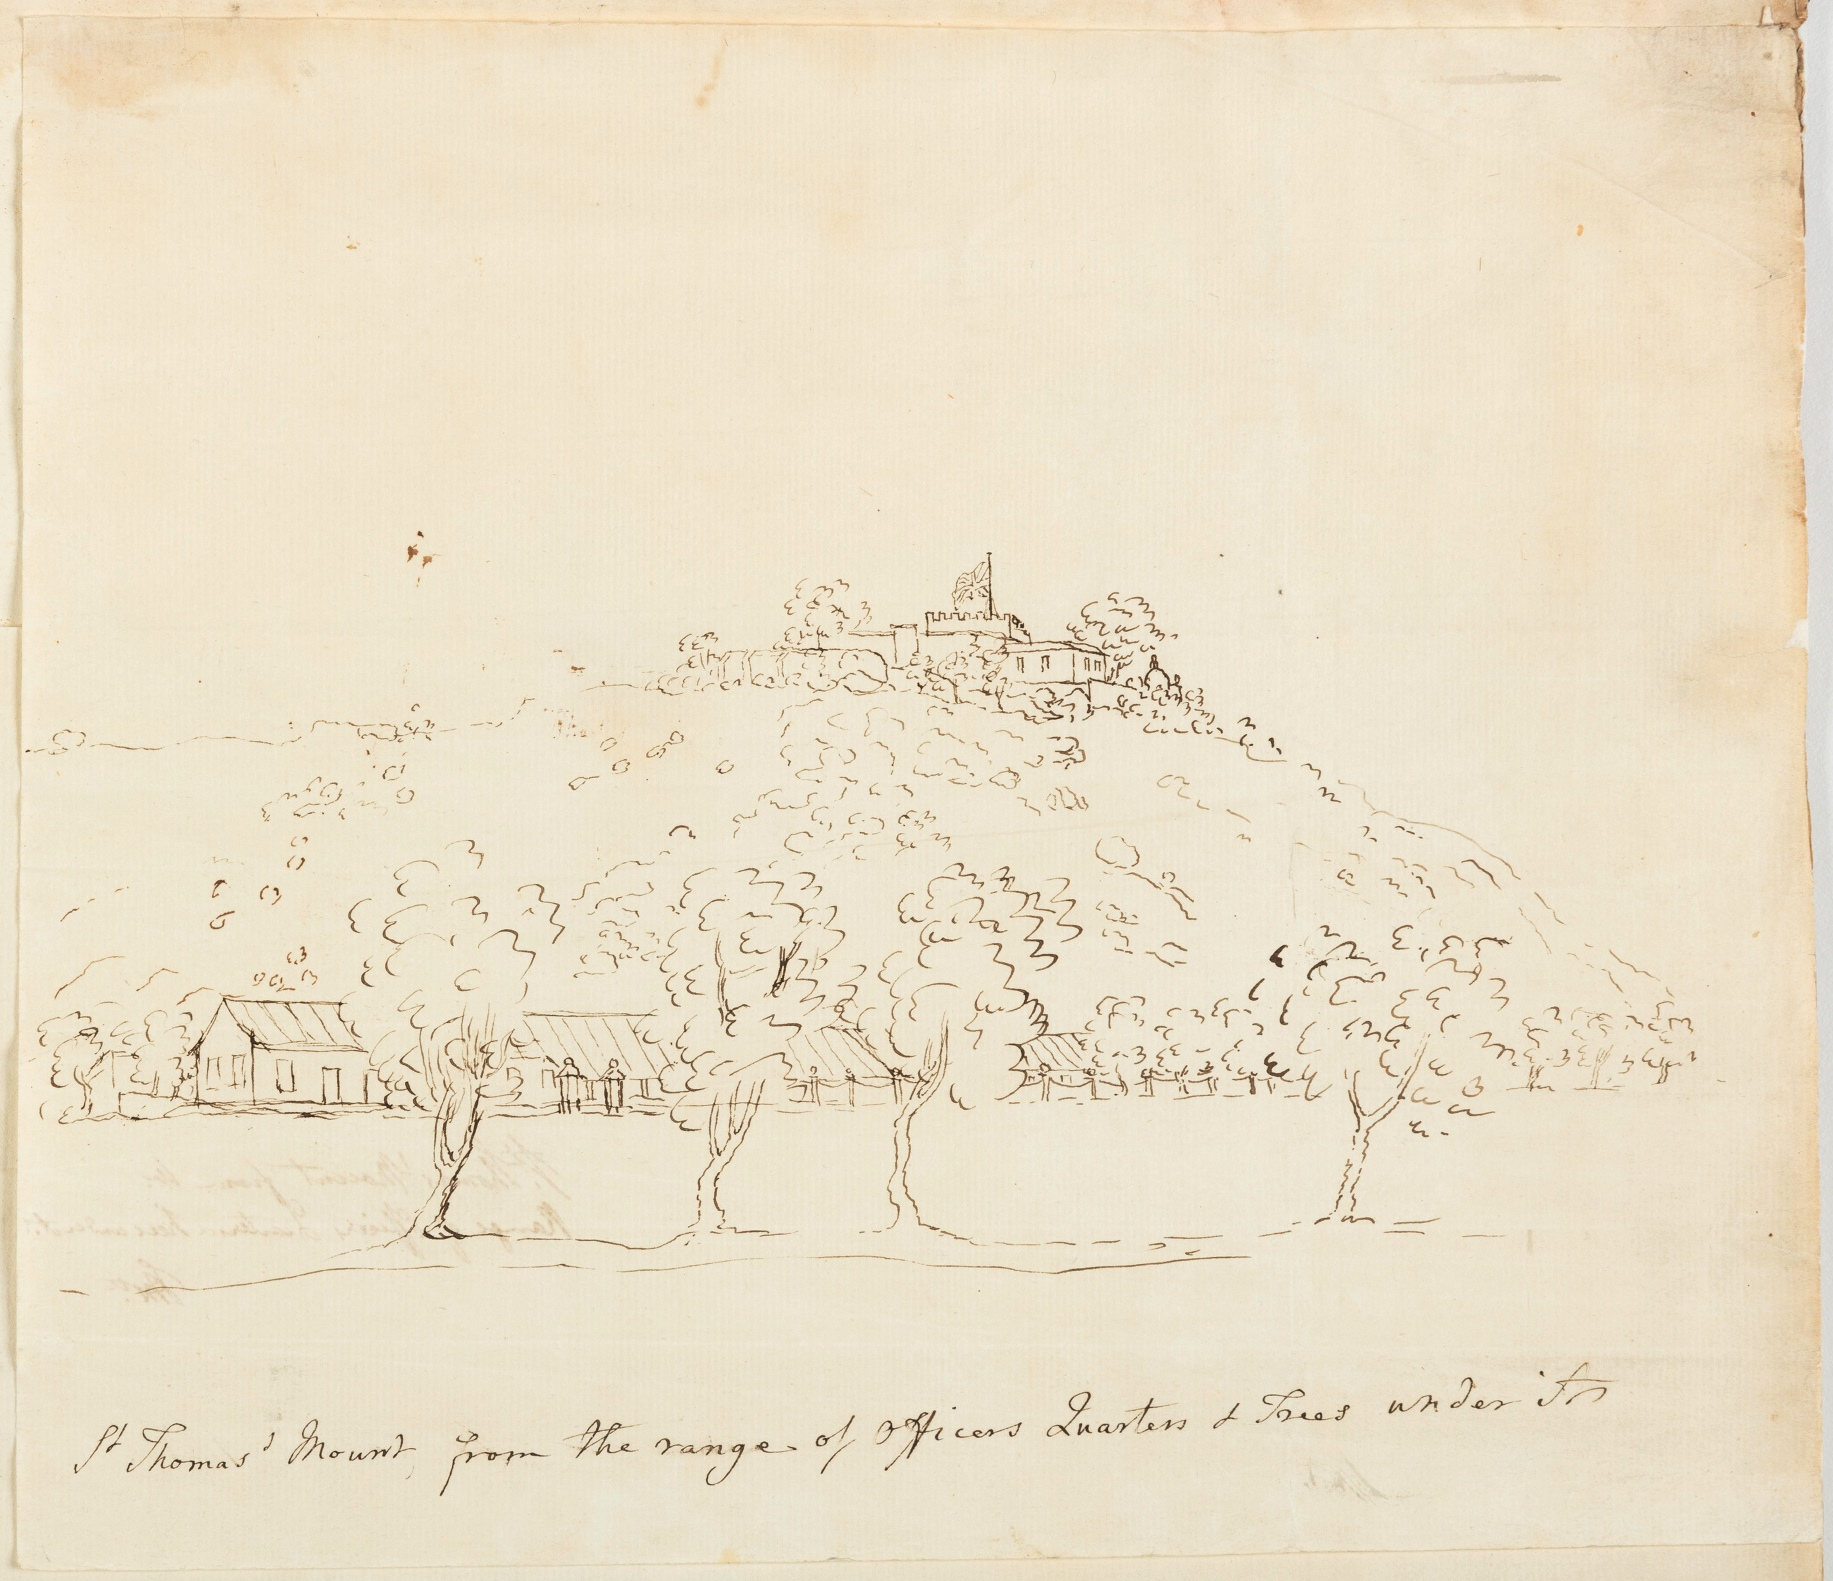 St. Thomas' Mount from the range of the Officers Quarters & Trees under A.